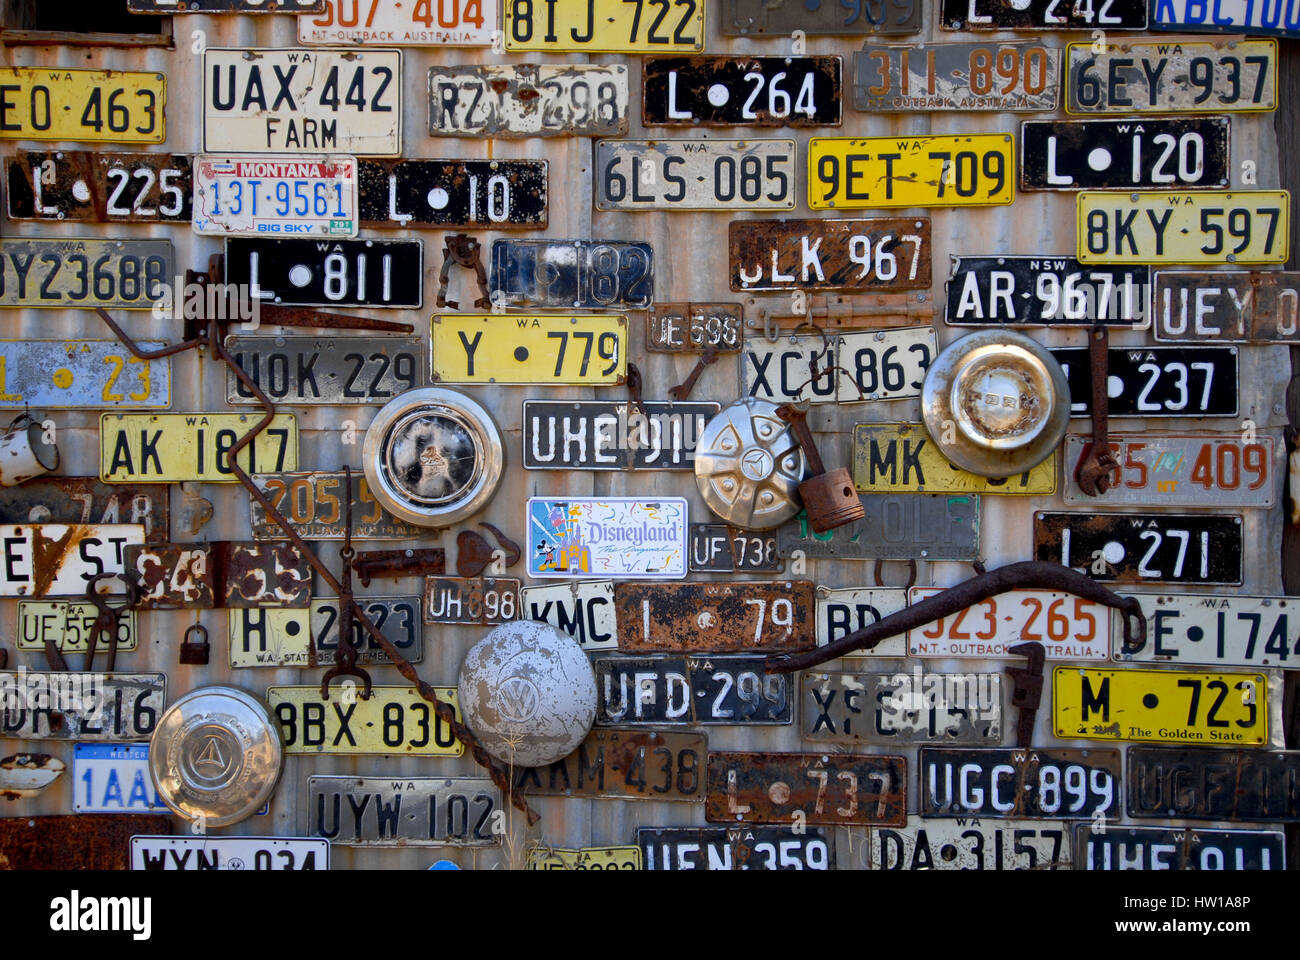 Auto signs on the wall in Westaustralien, Autoschilder an der Wand in Westaustralien - Stock Image